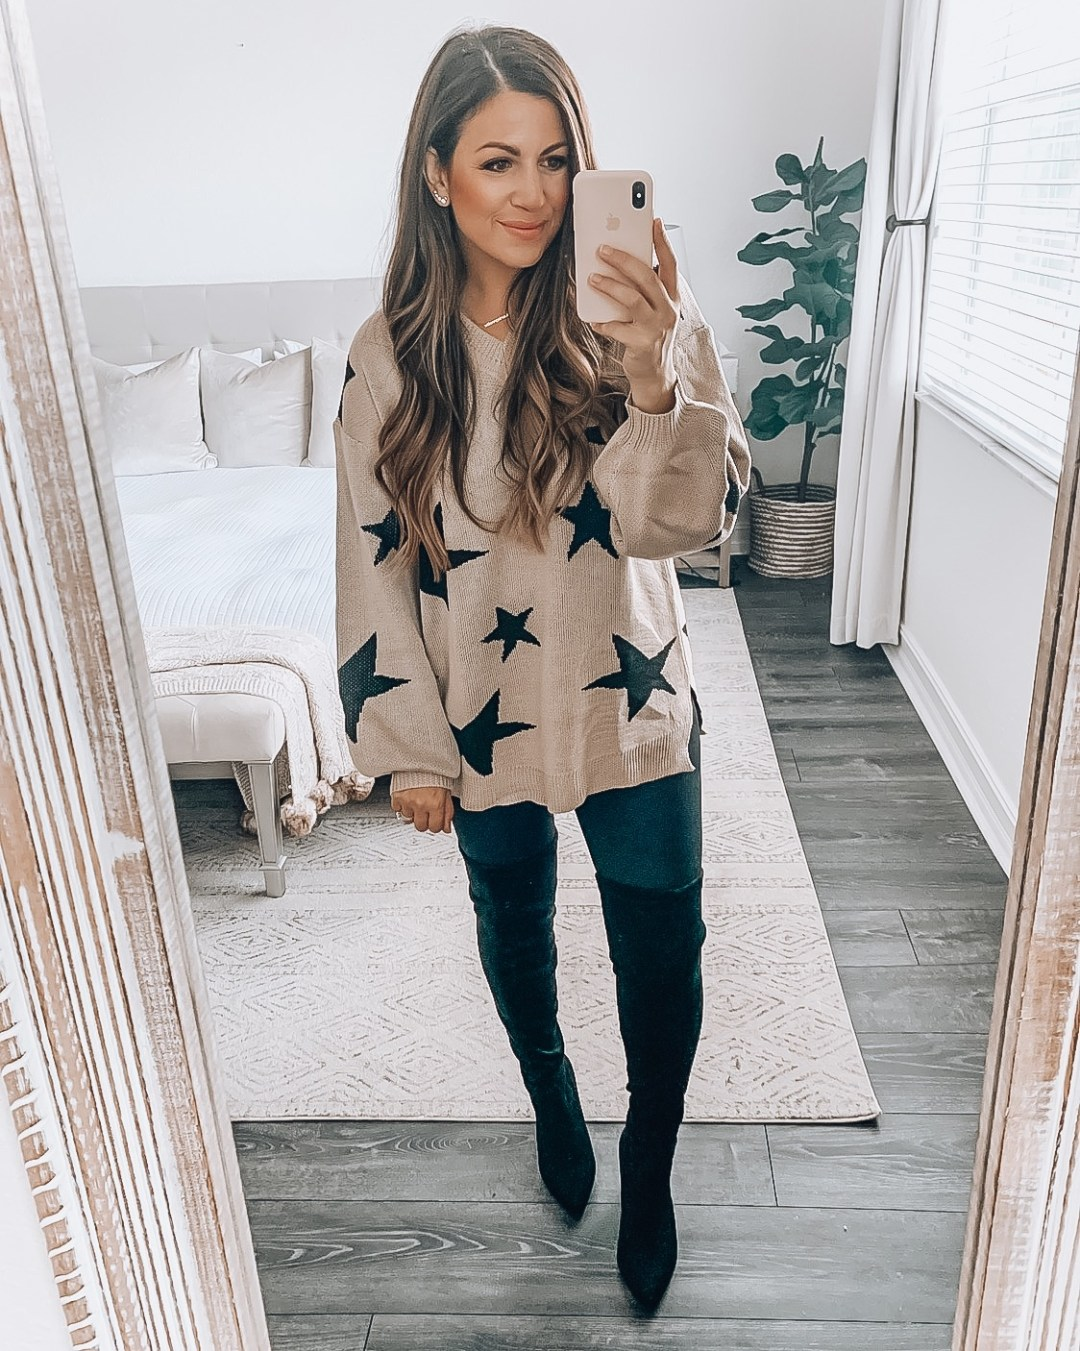 Amazon Fashion star sweater, oversize star sweater, fall fashion outfit, affordable OTK boots